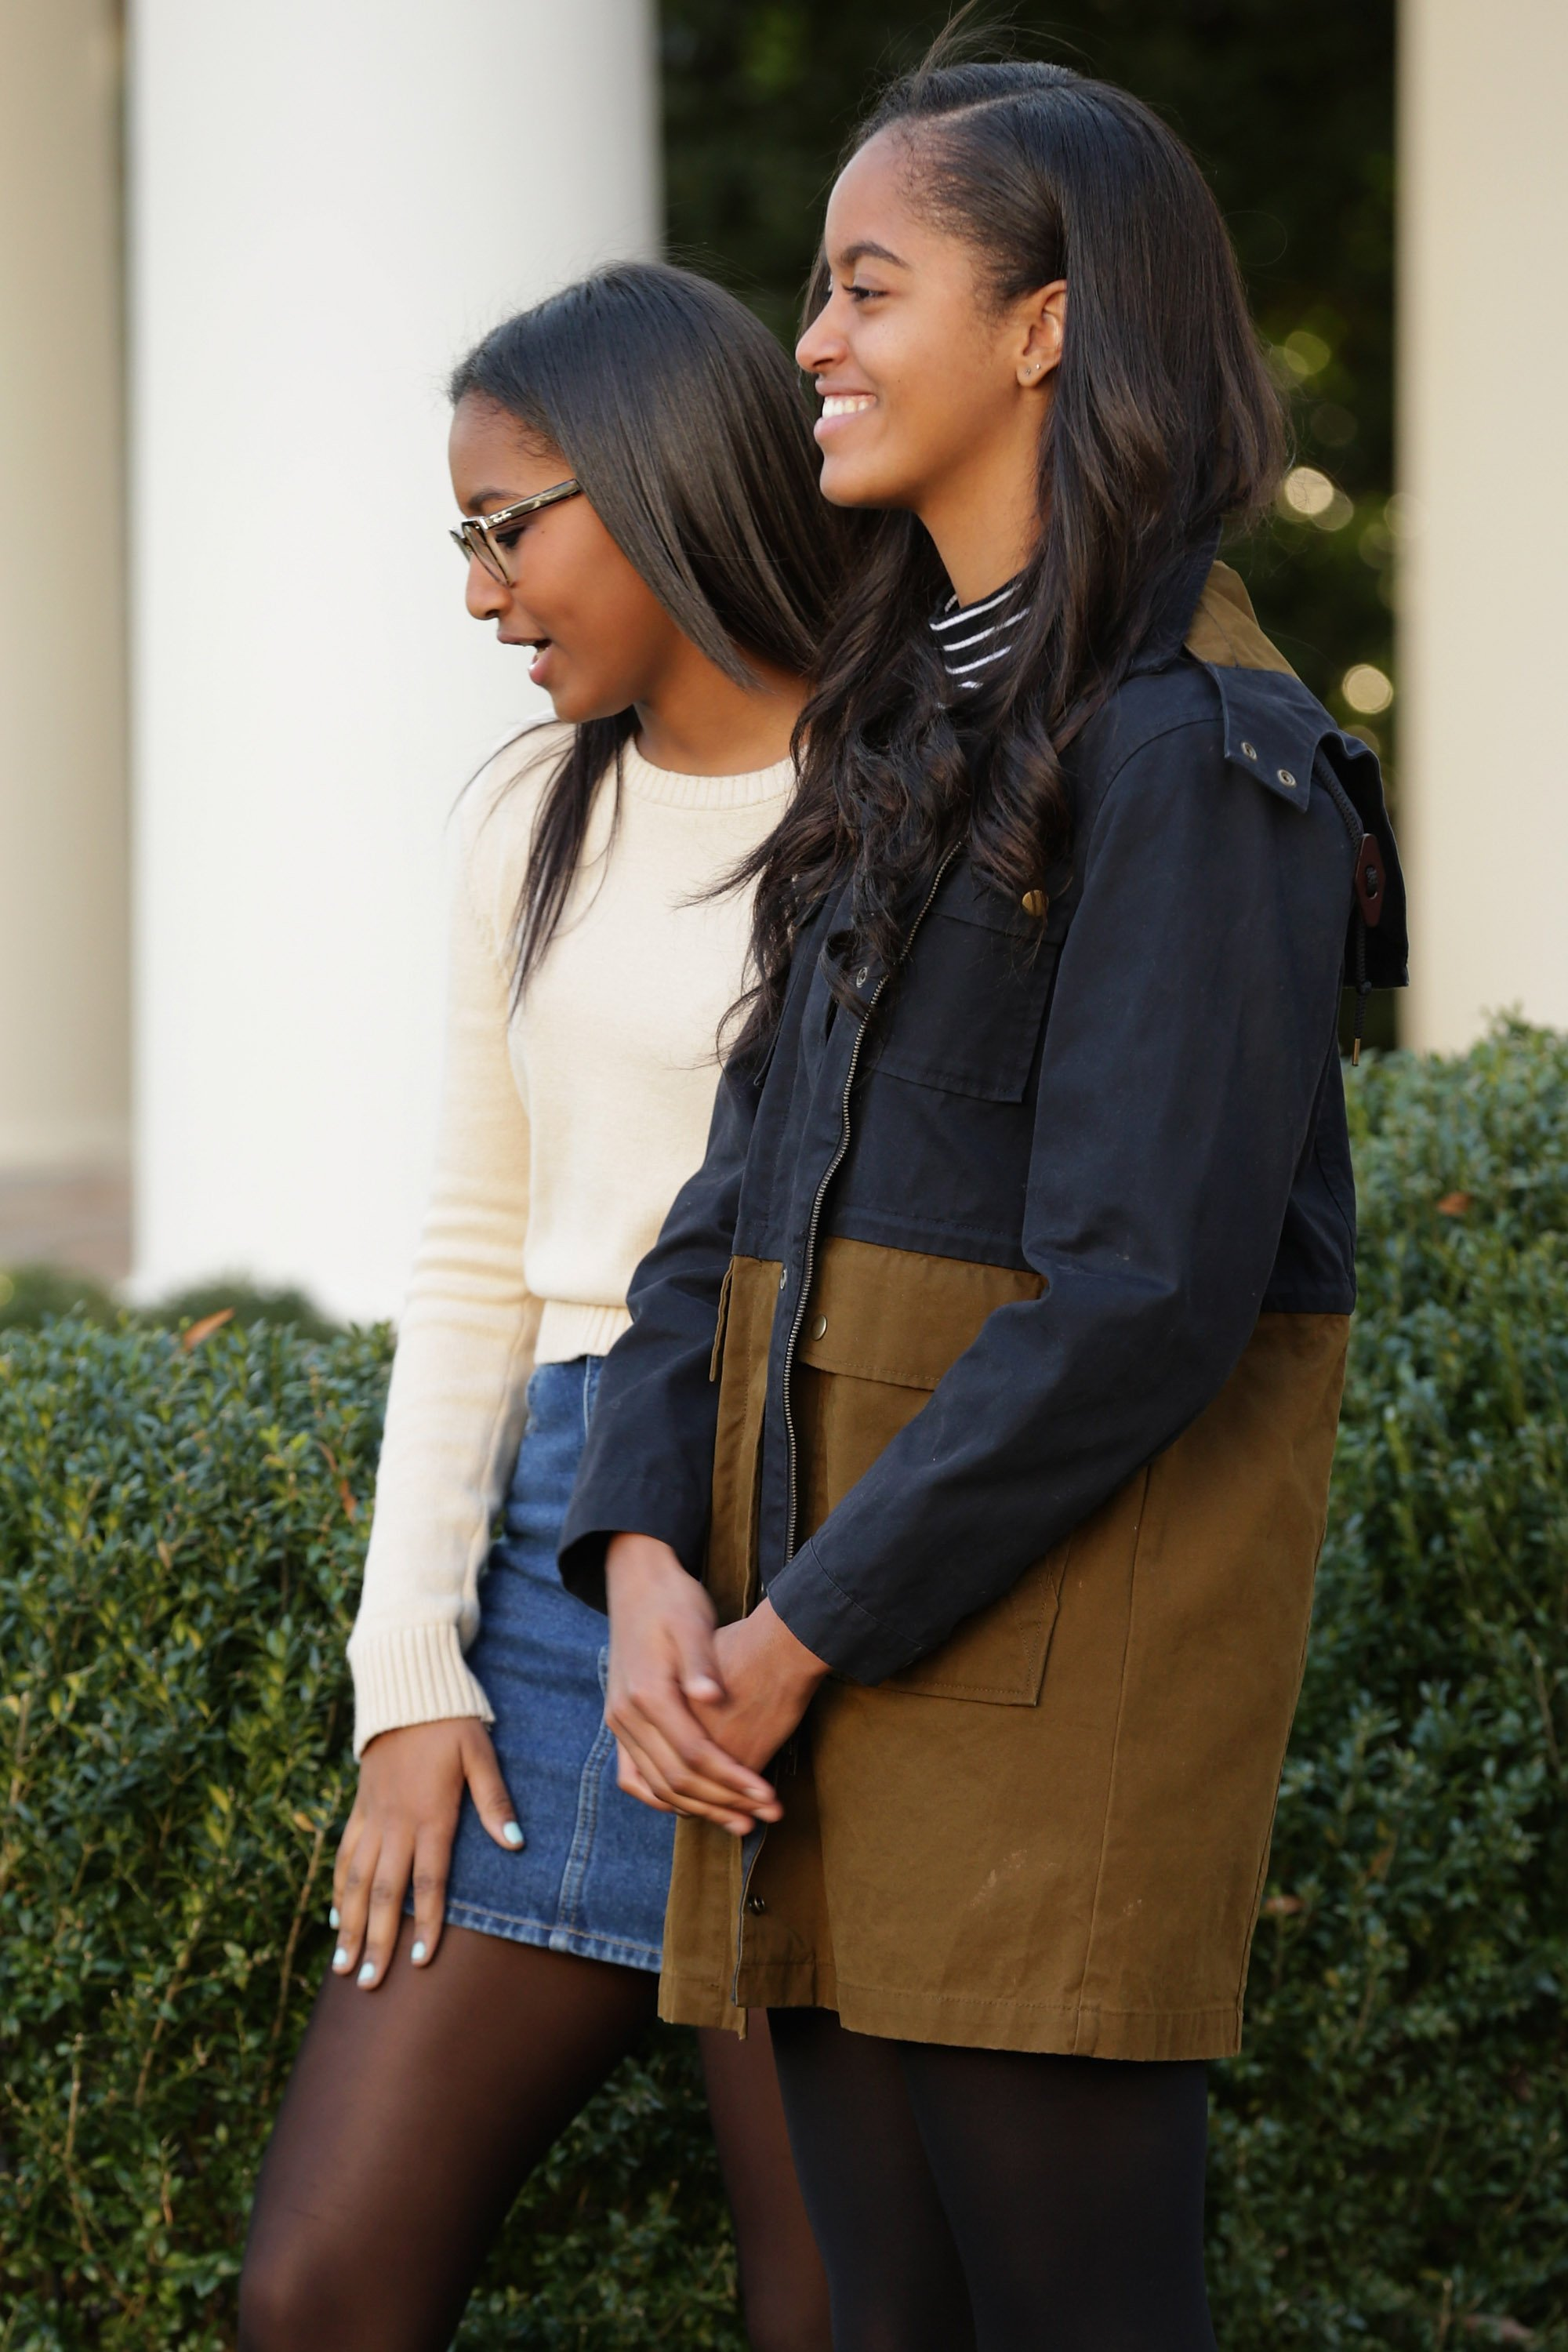 U.S. President Barack Obama's daughters Sasha (L) and Malia participate in the annual turkey pardoning ceremony in the Rose Garden at the White House November 25, 2015, in Washington, DC. | Source: Getty Images.